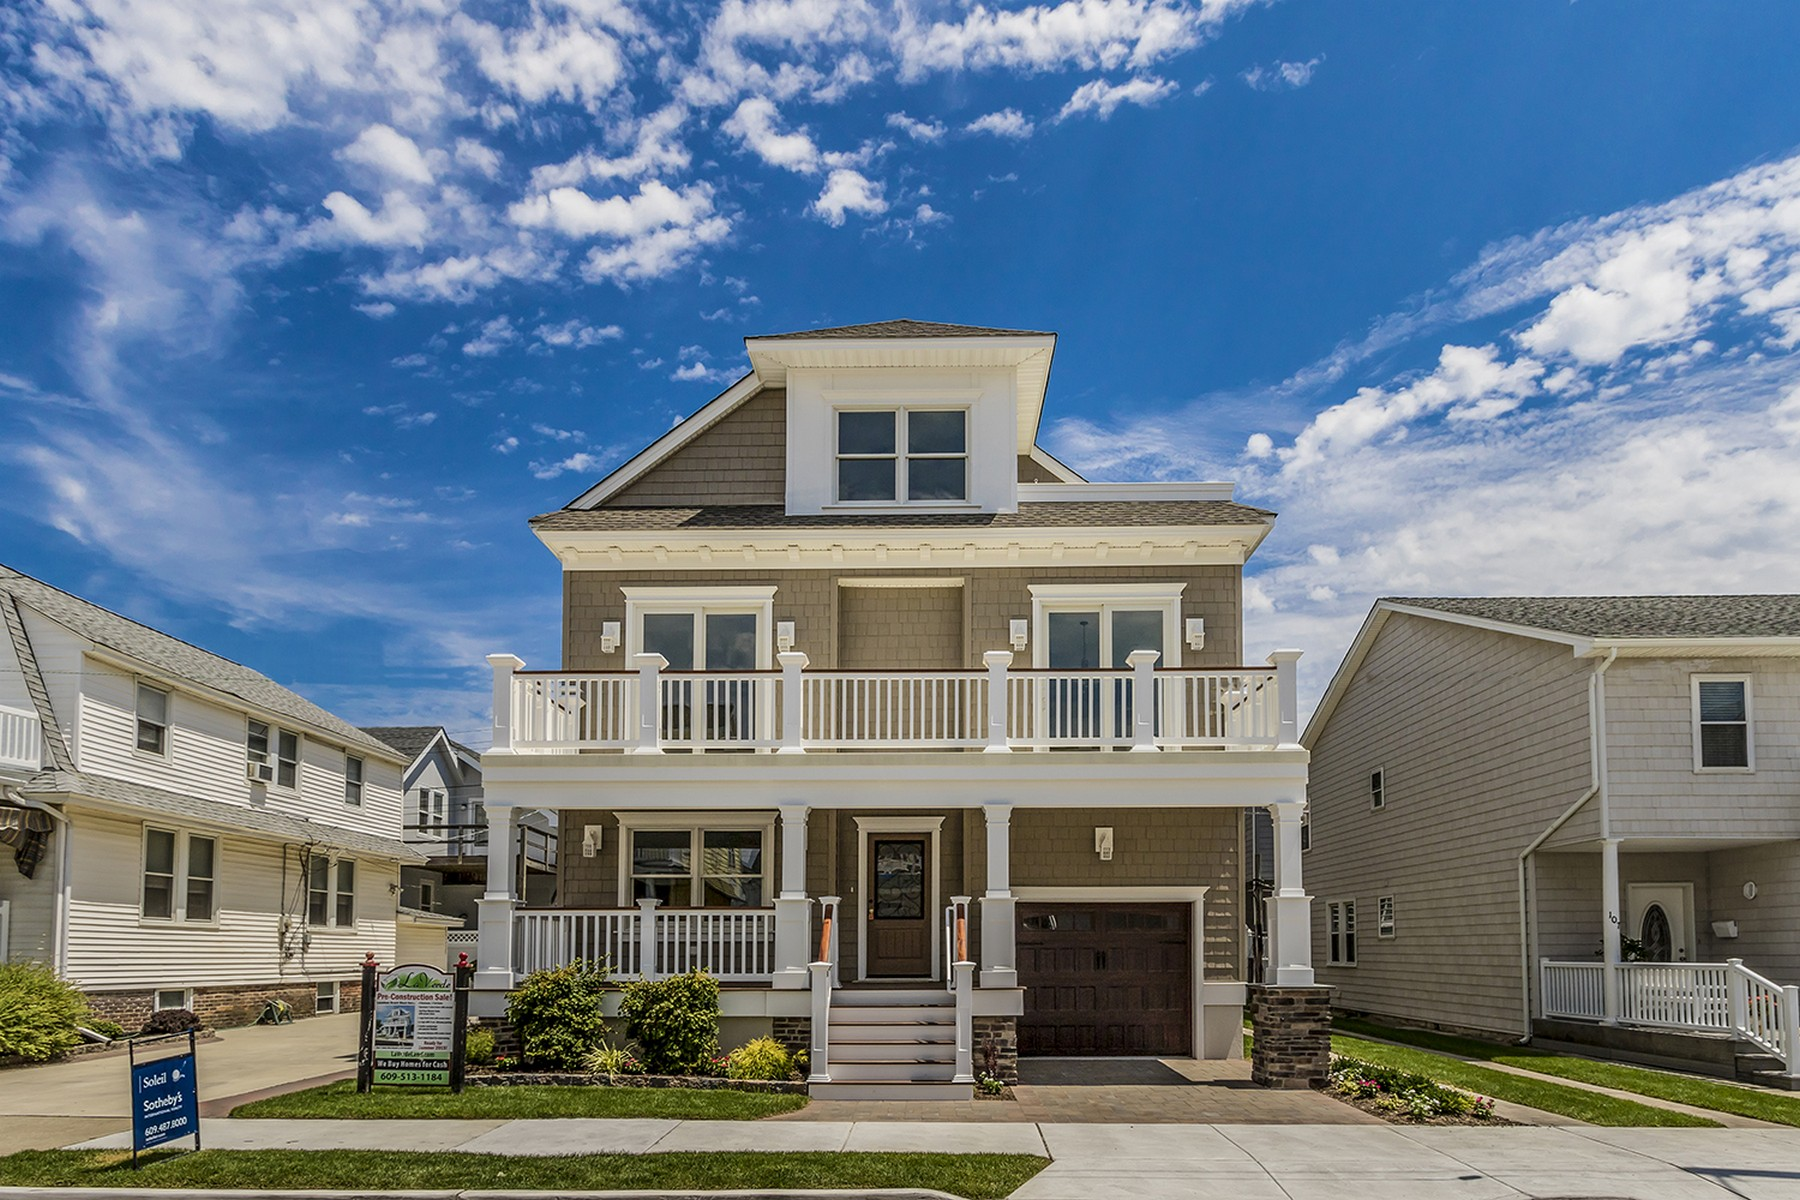 Single Family Home for Sale at 105 S Troy Ave. Ventnor, 08406 United States